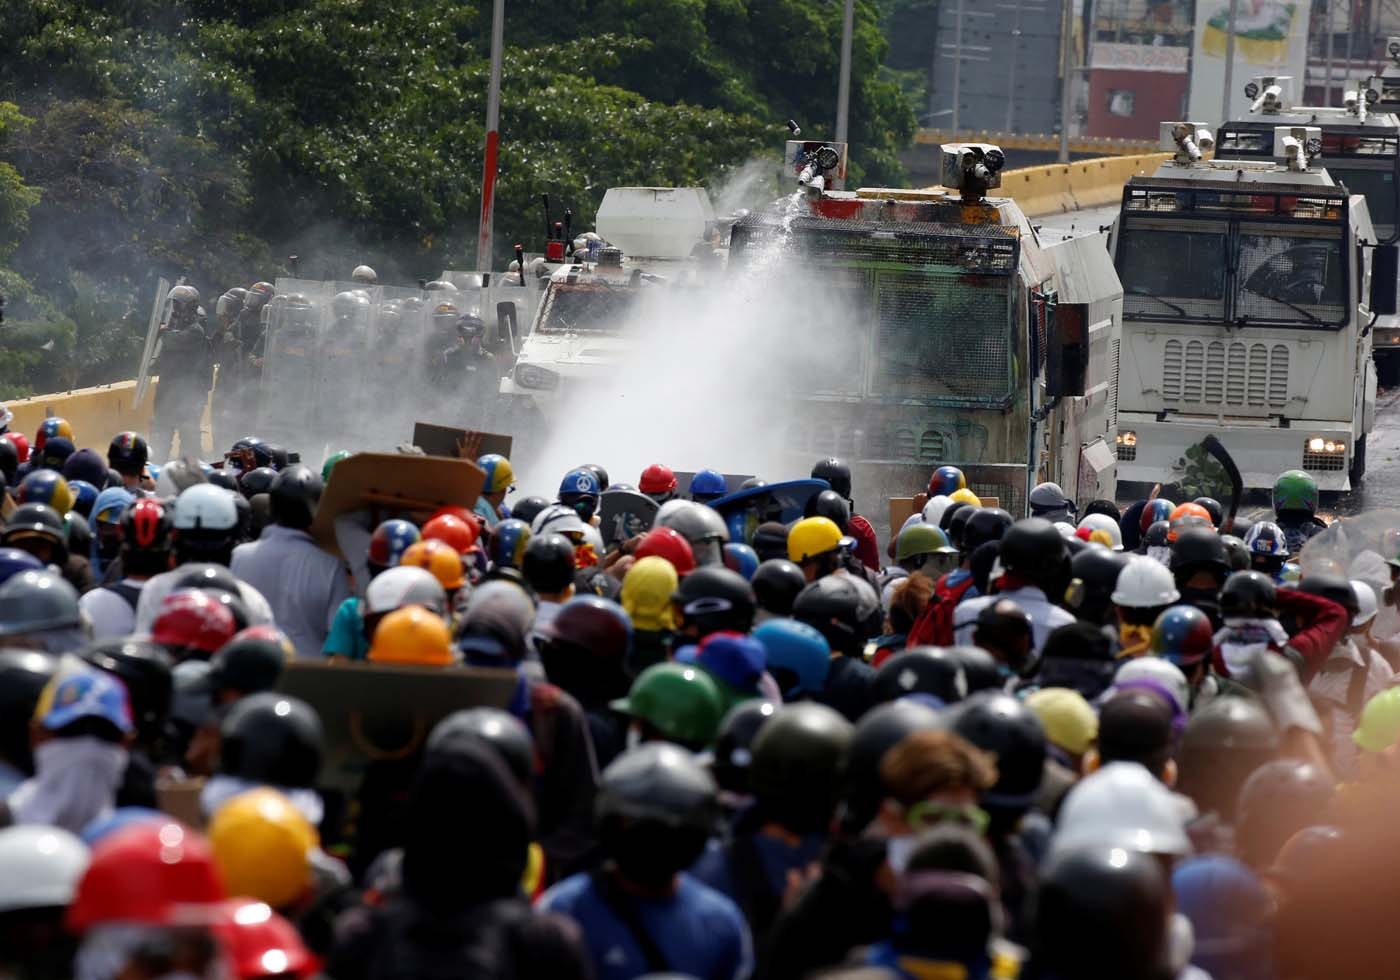 Riot security forces use a water canon while clashing with demonstrators rallying against President Nicolas Maduro in Caracas, Venezuela, May 24, 2017. REUTERS/Carlos Garcia Rawlins